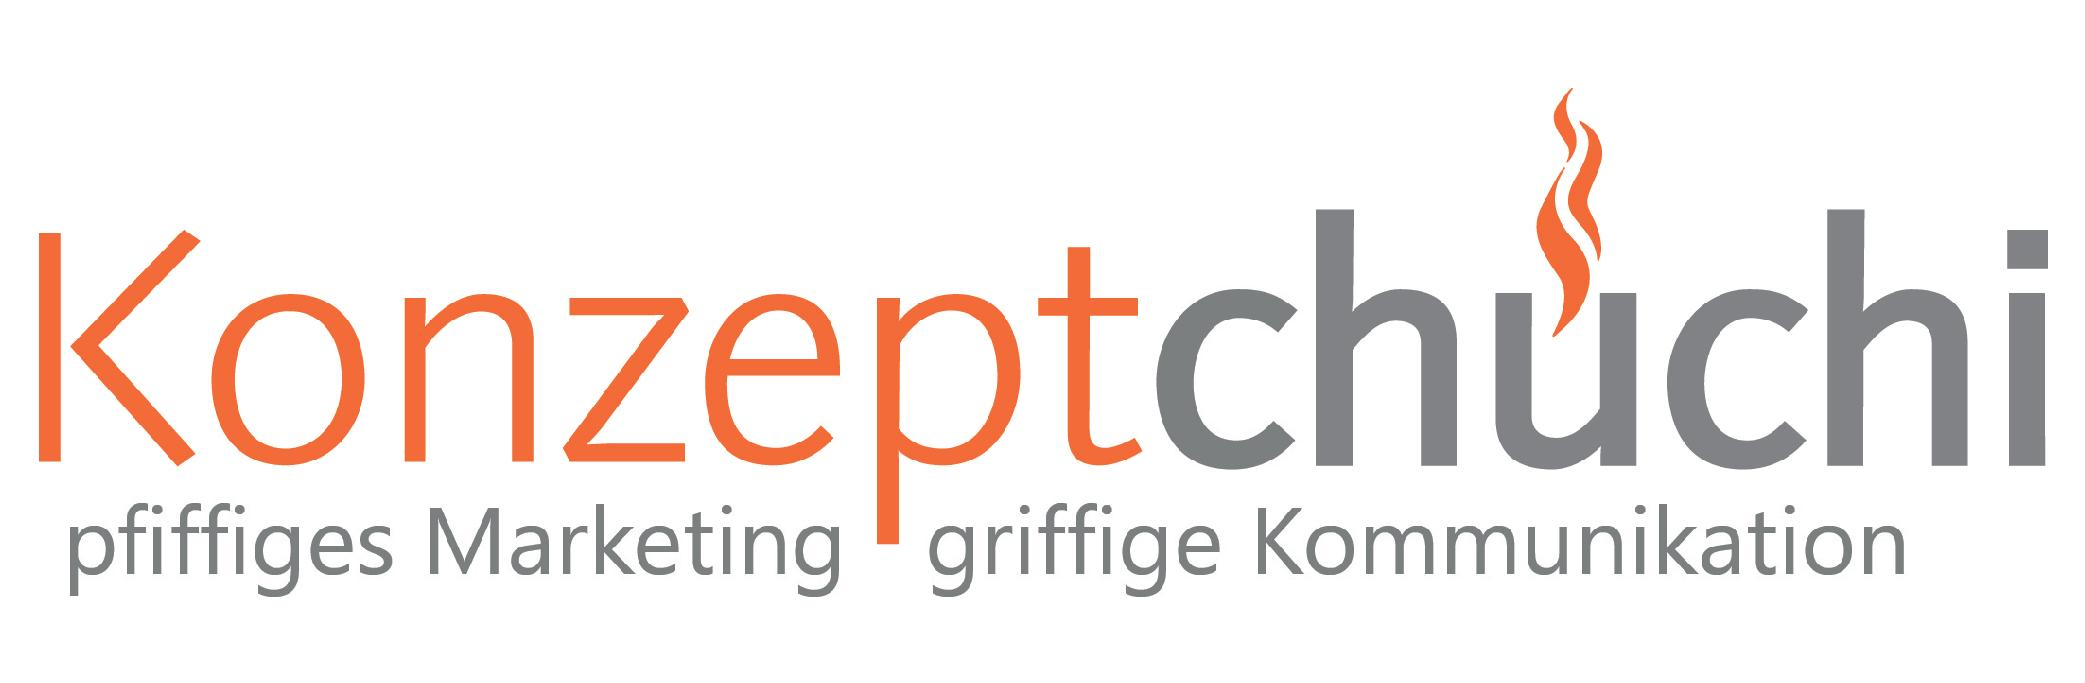 Konzeptchuchi GmbH: pfiffiges Marketing - griffige Kommunikation